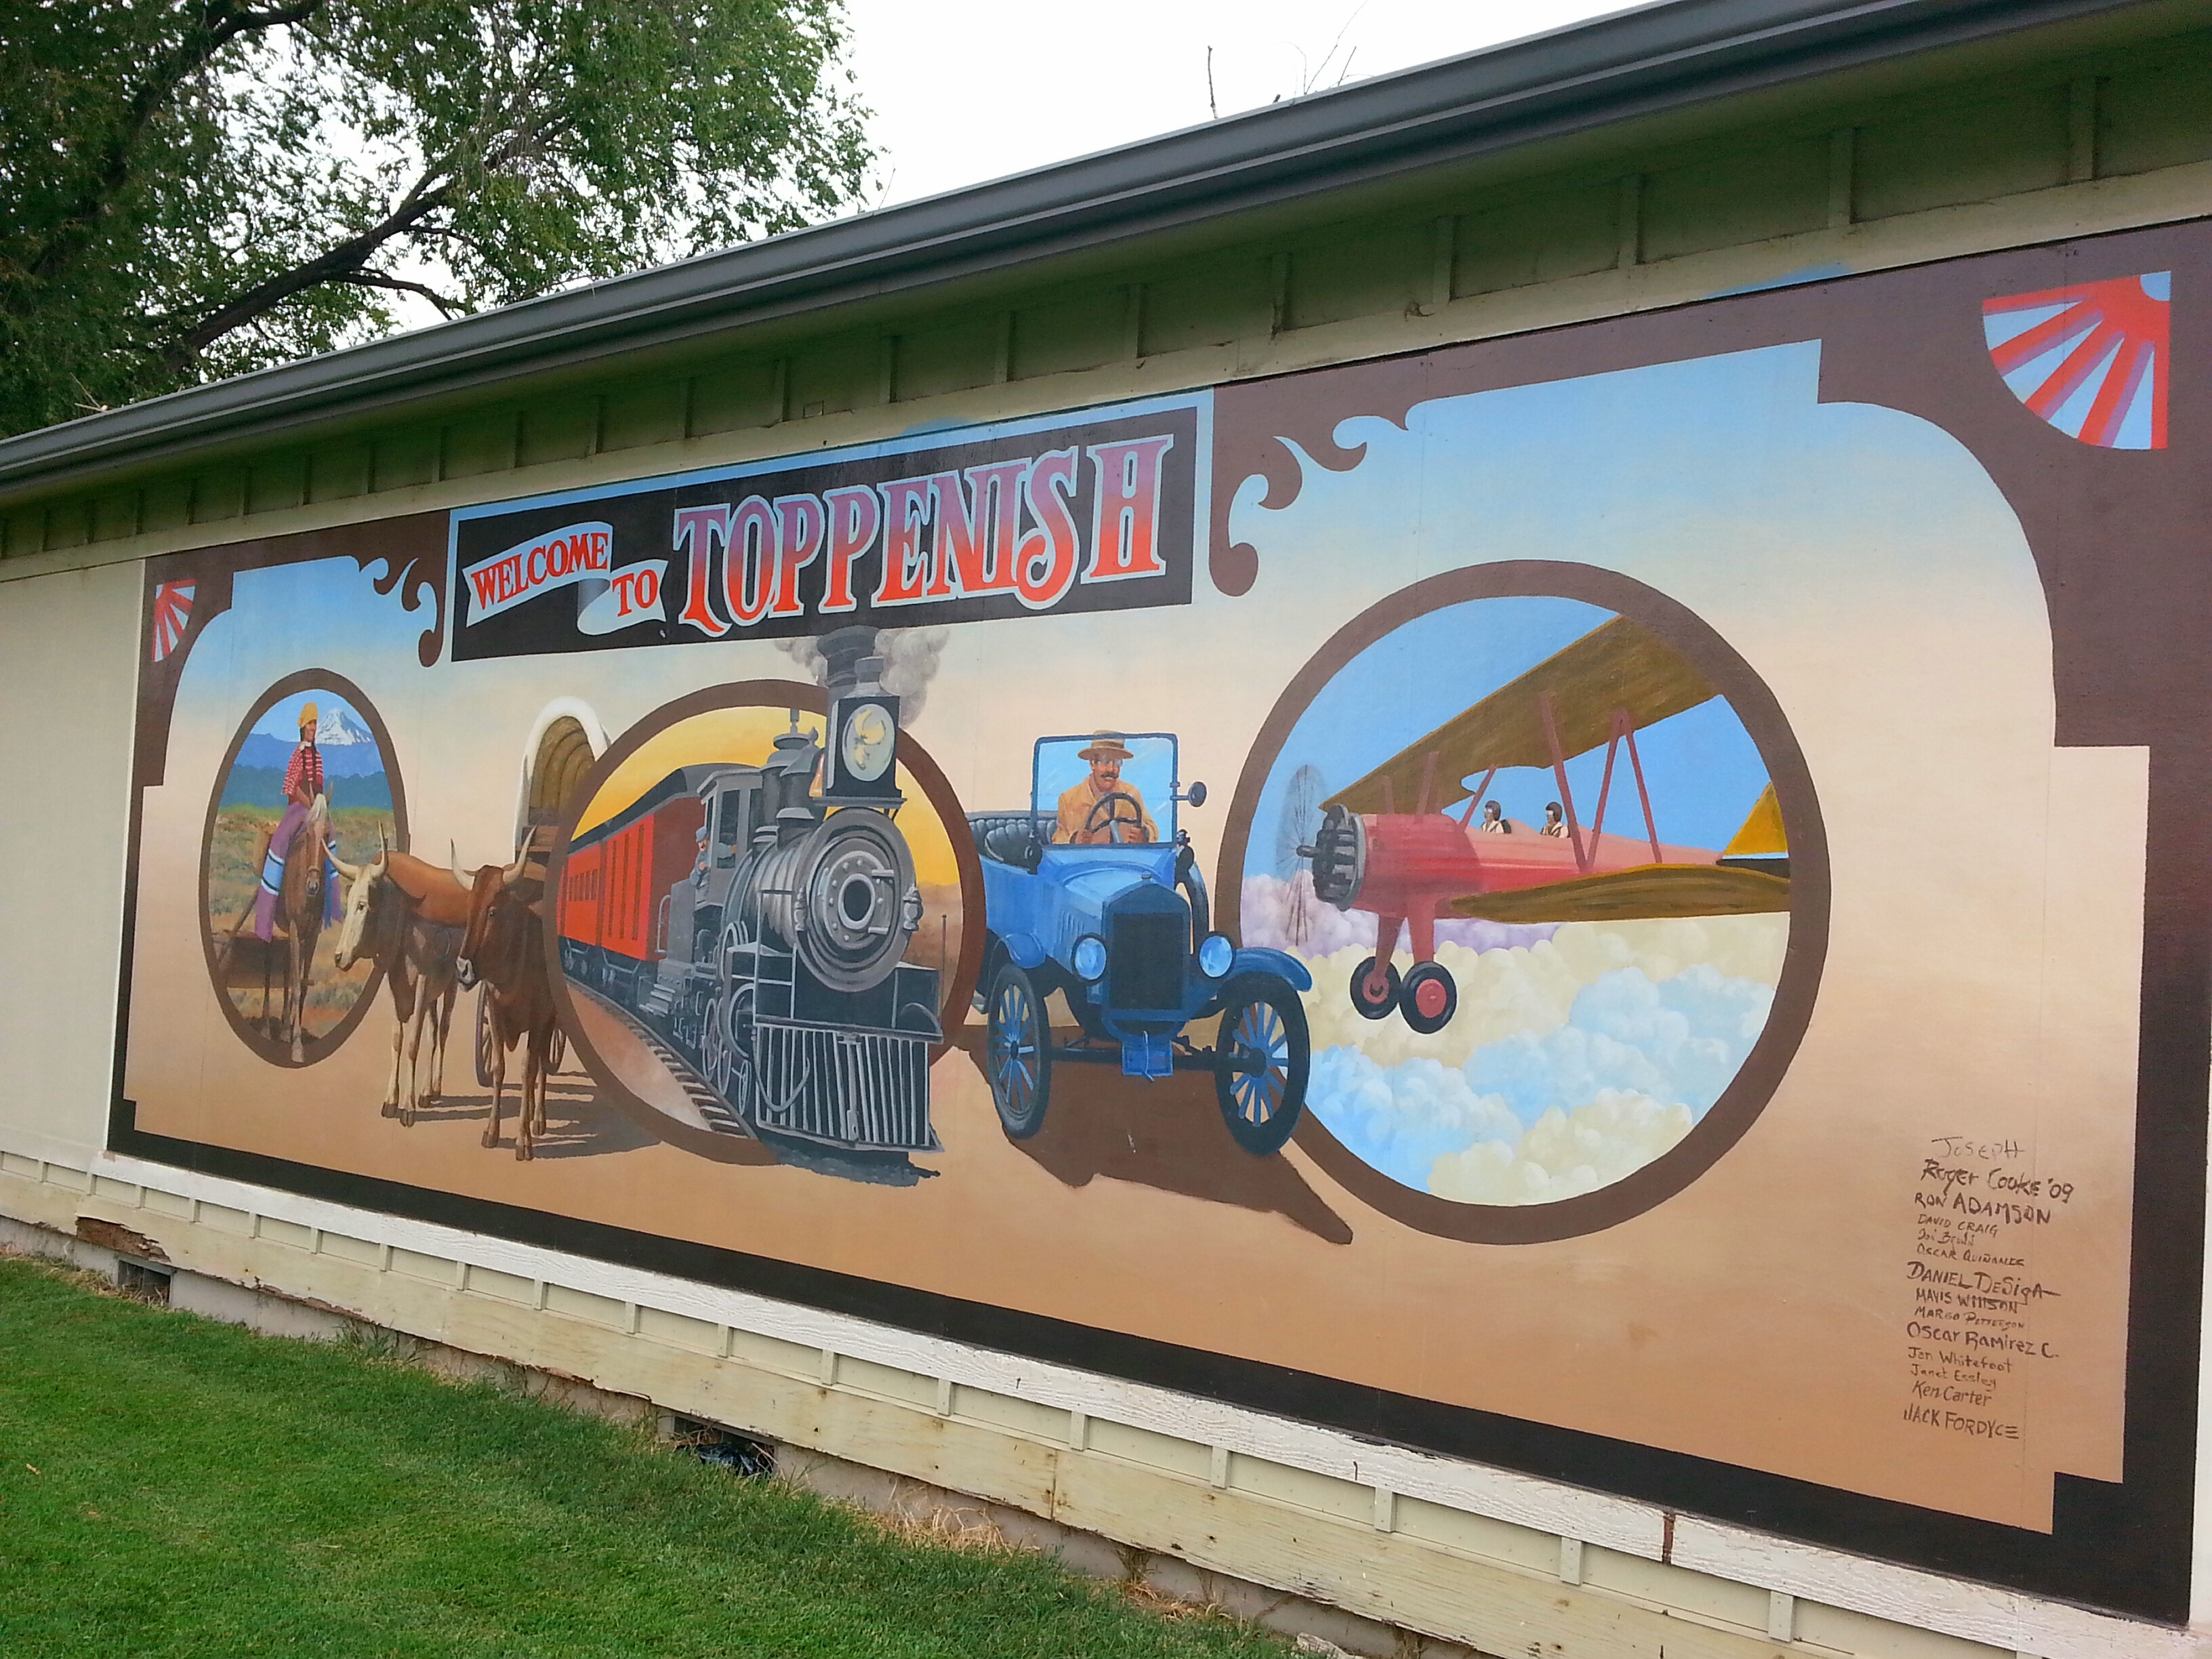 The welcome mural of Toppenish / photo by Michael Mackie